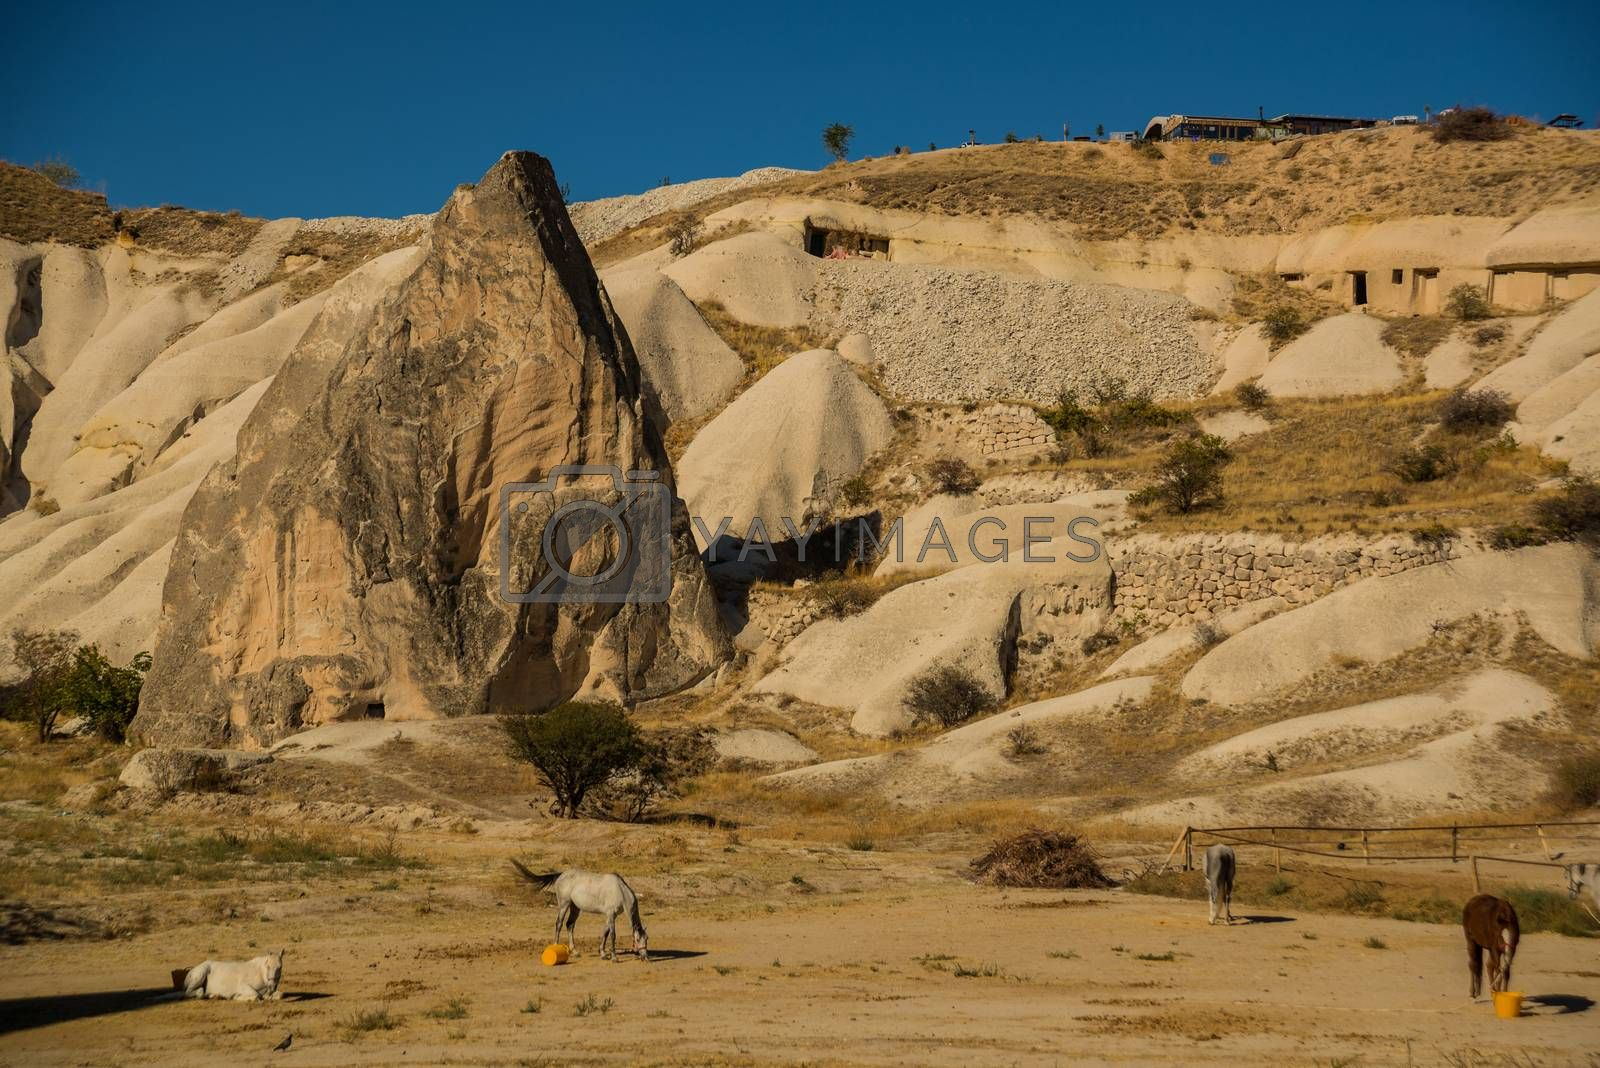 Cappadocia, Turkey: Horses near the mountains in Sunny summer weather. Beautiful landscape in summer with hills.